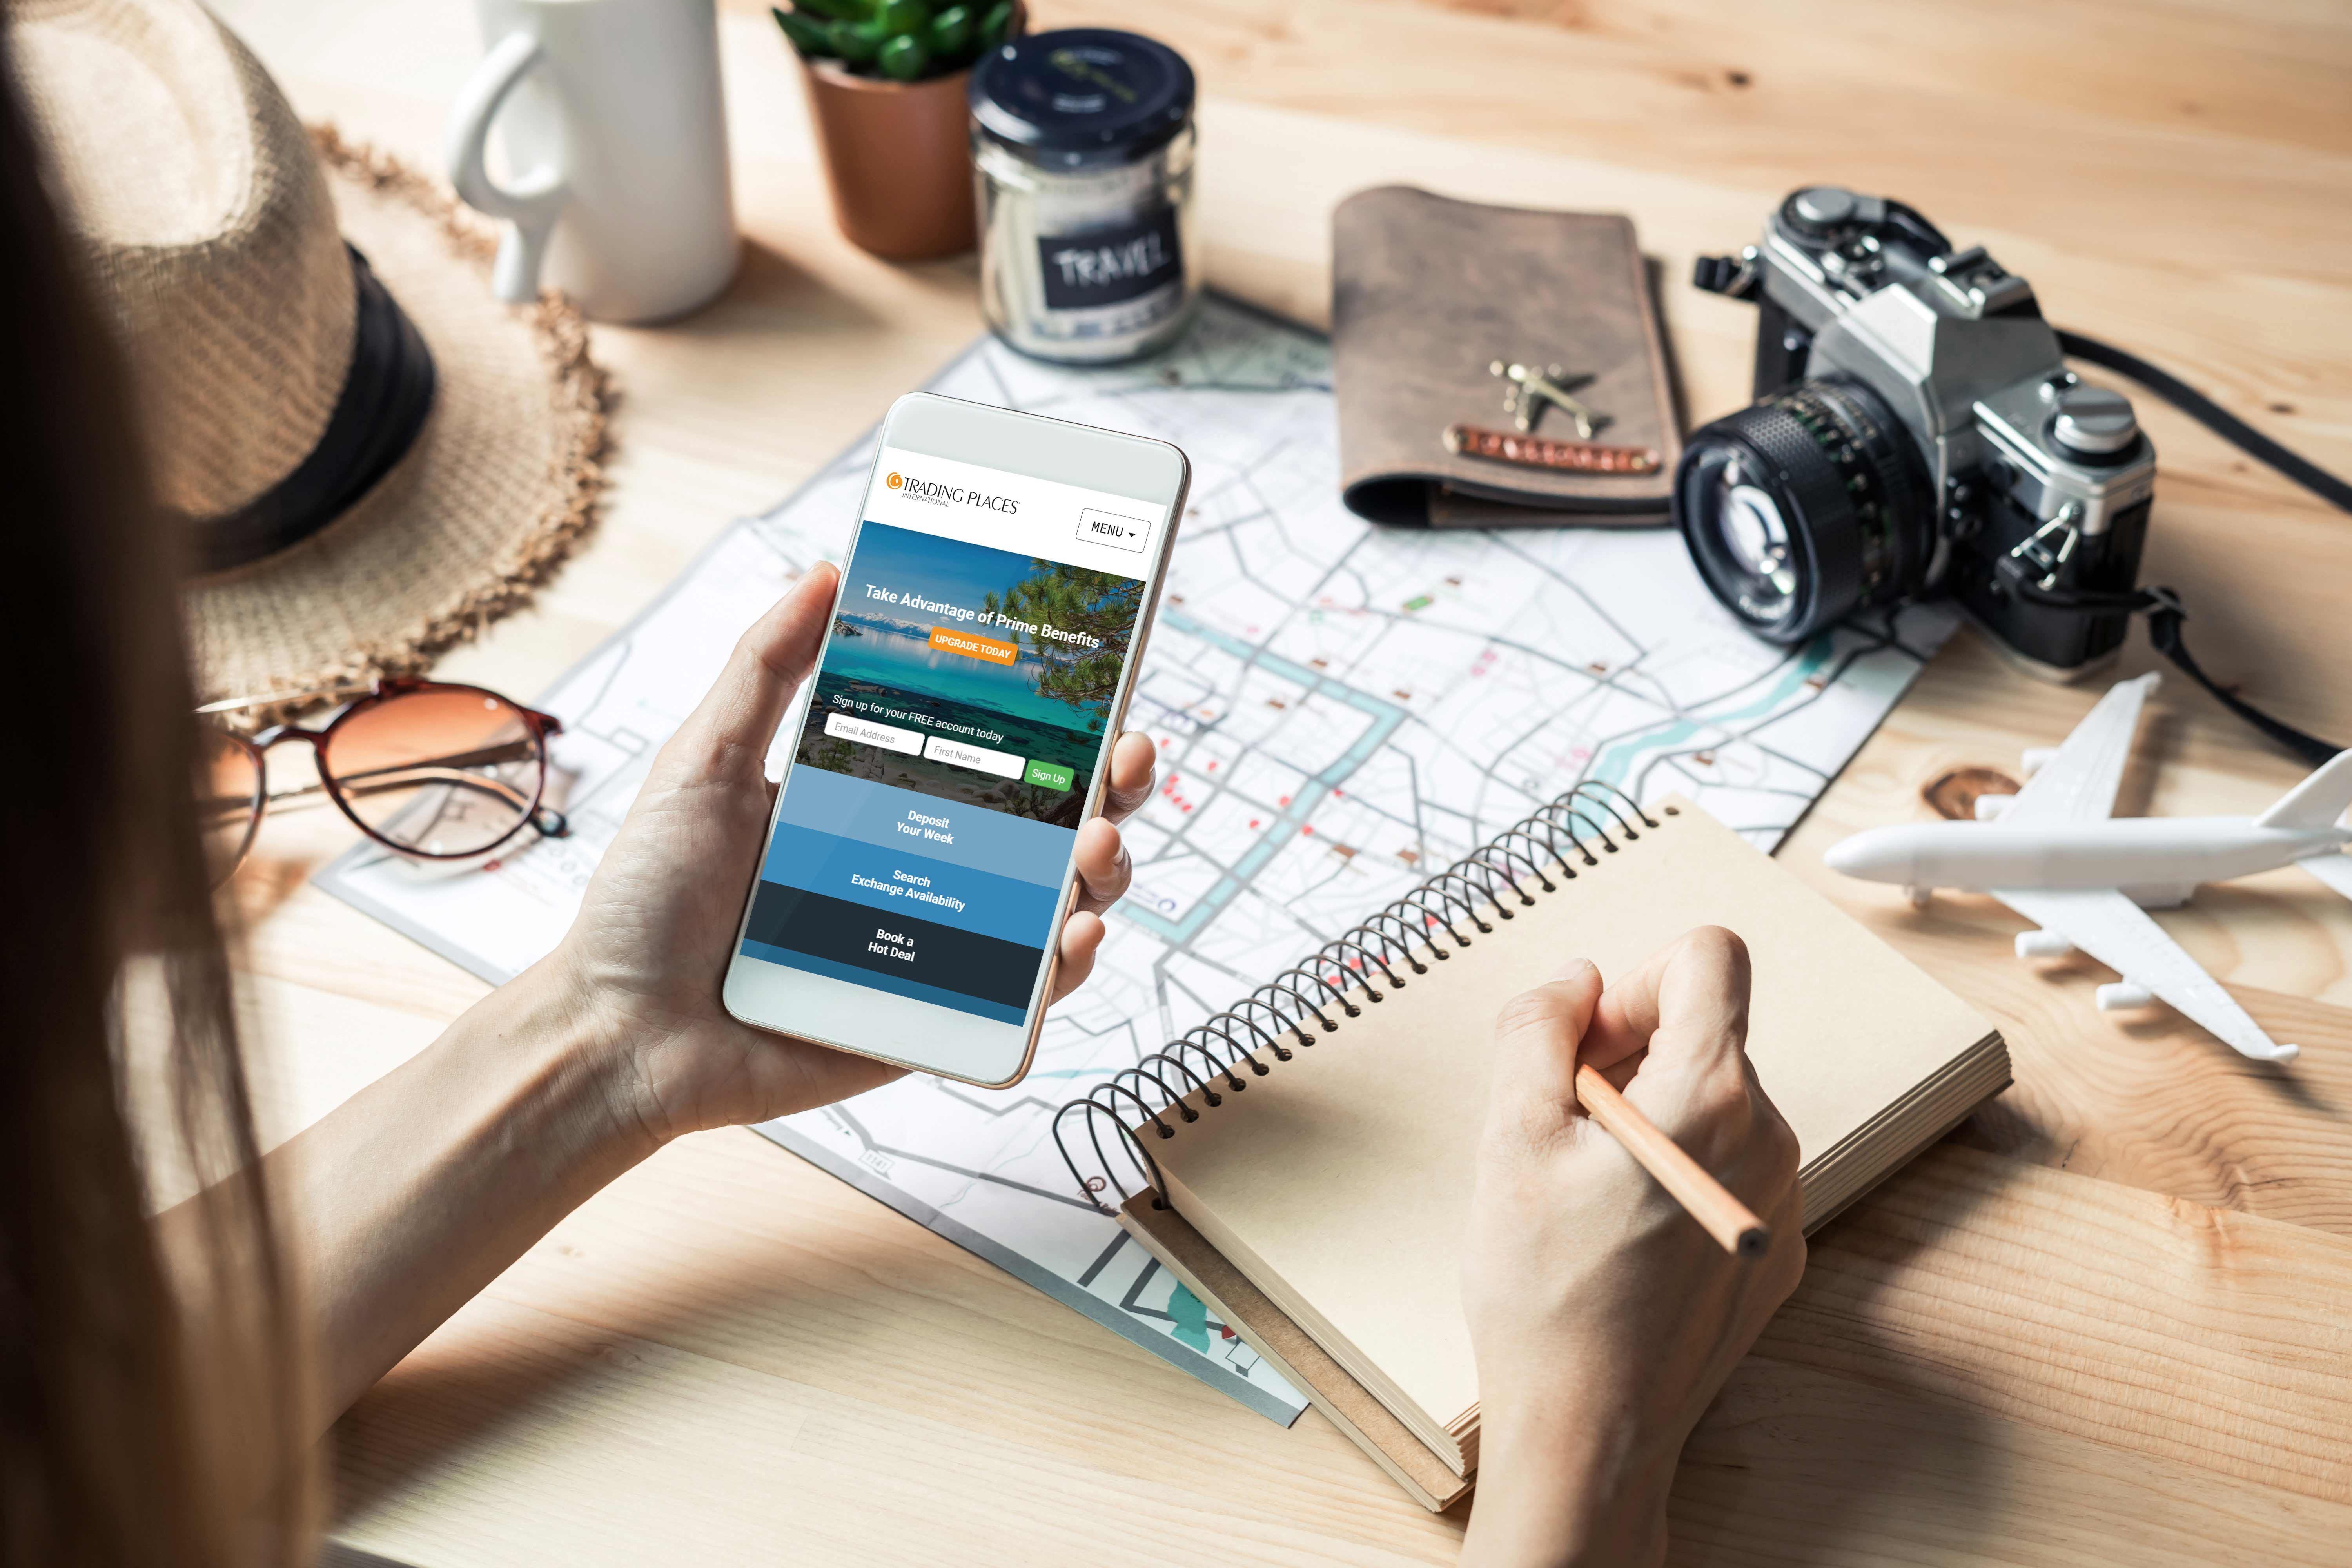 Traveler with map, pen and pad searches for timeshare exchange help on Trading Places mobile site